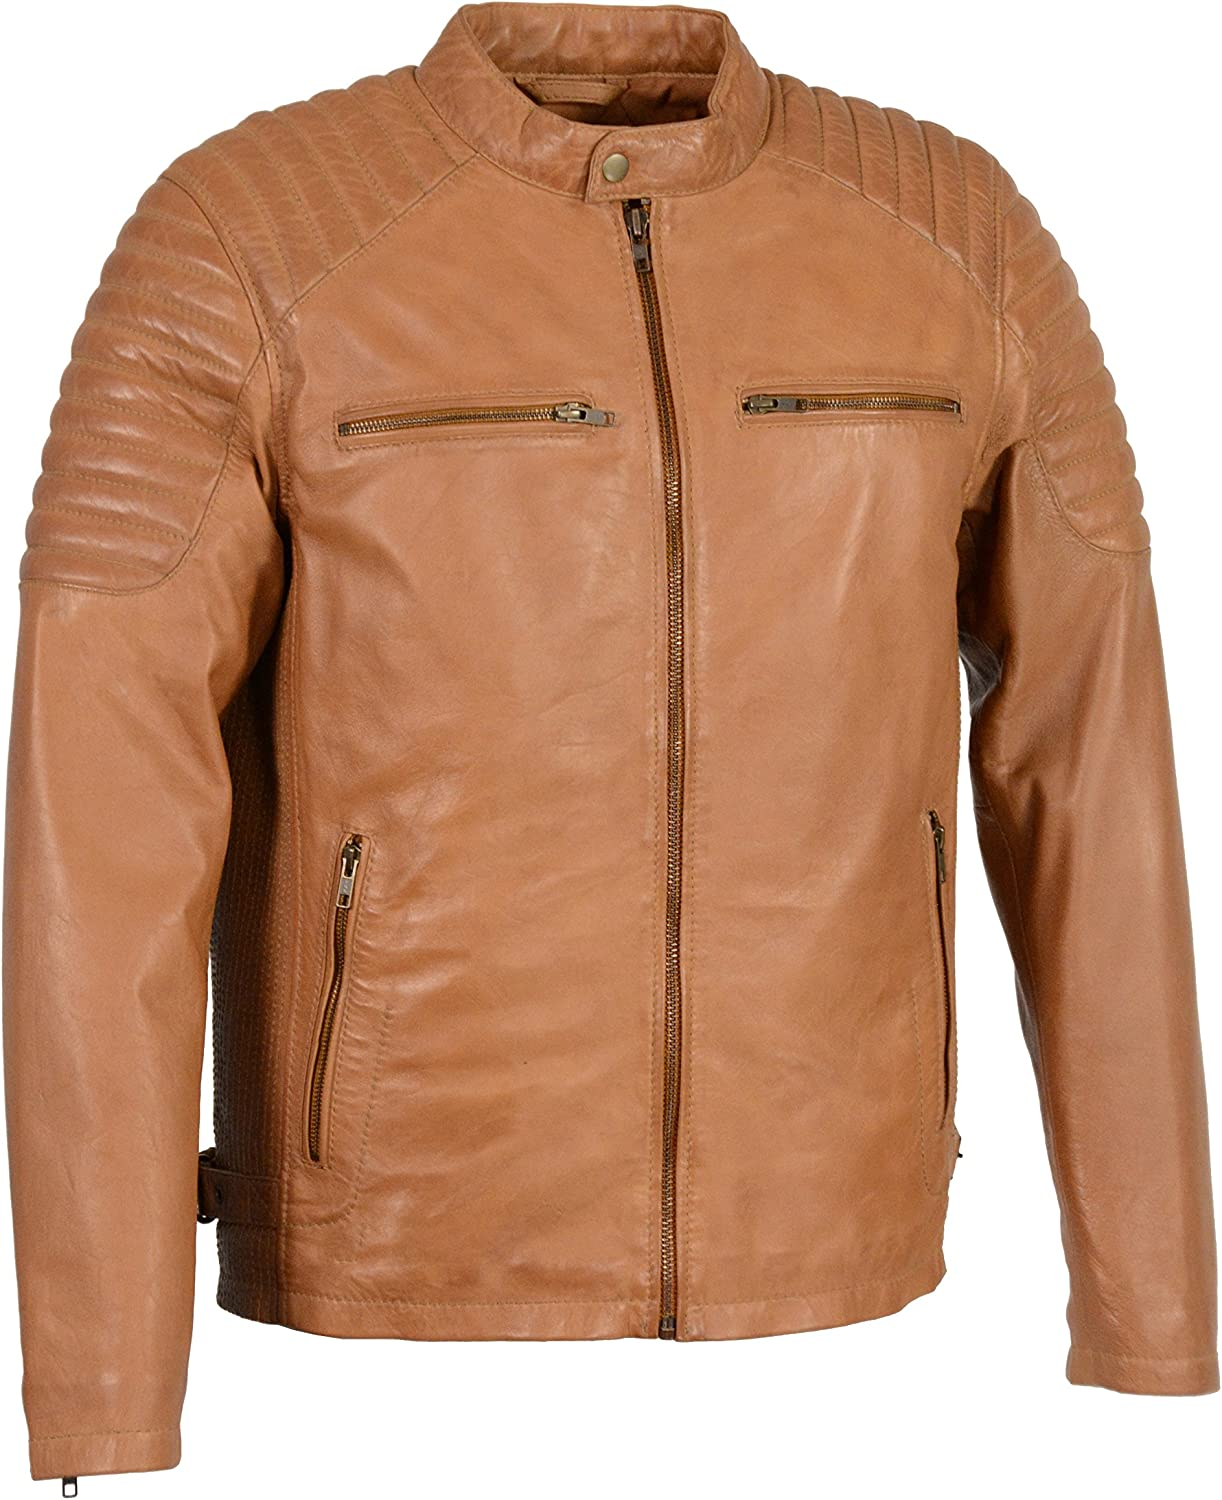 Men's Snap Collar Leather Jacket w/Quilted Shoulders